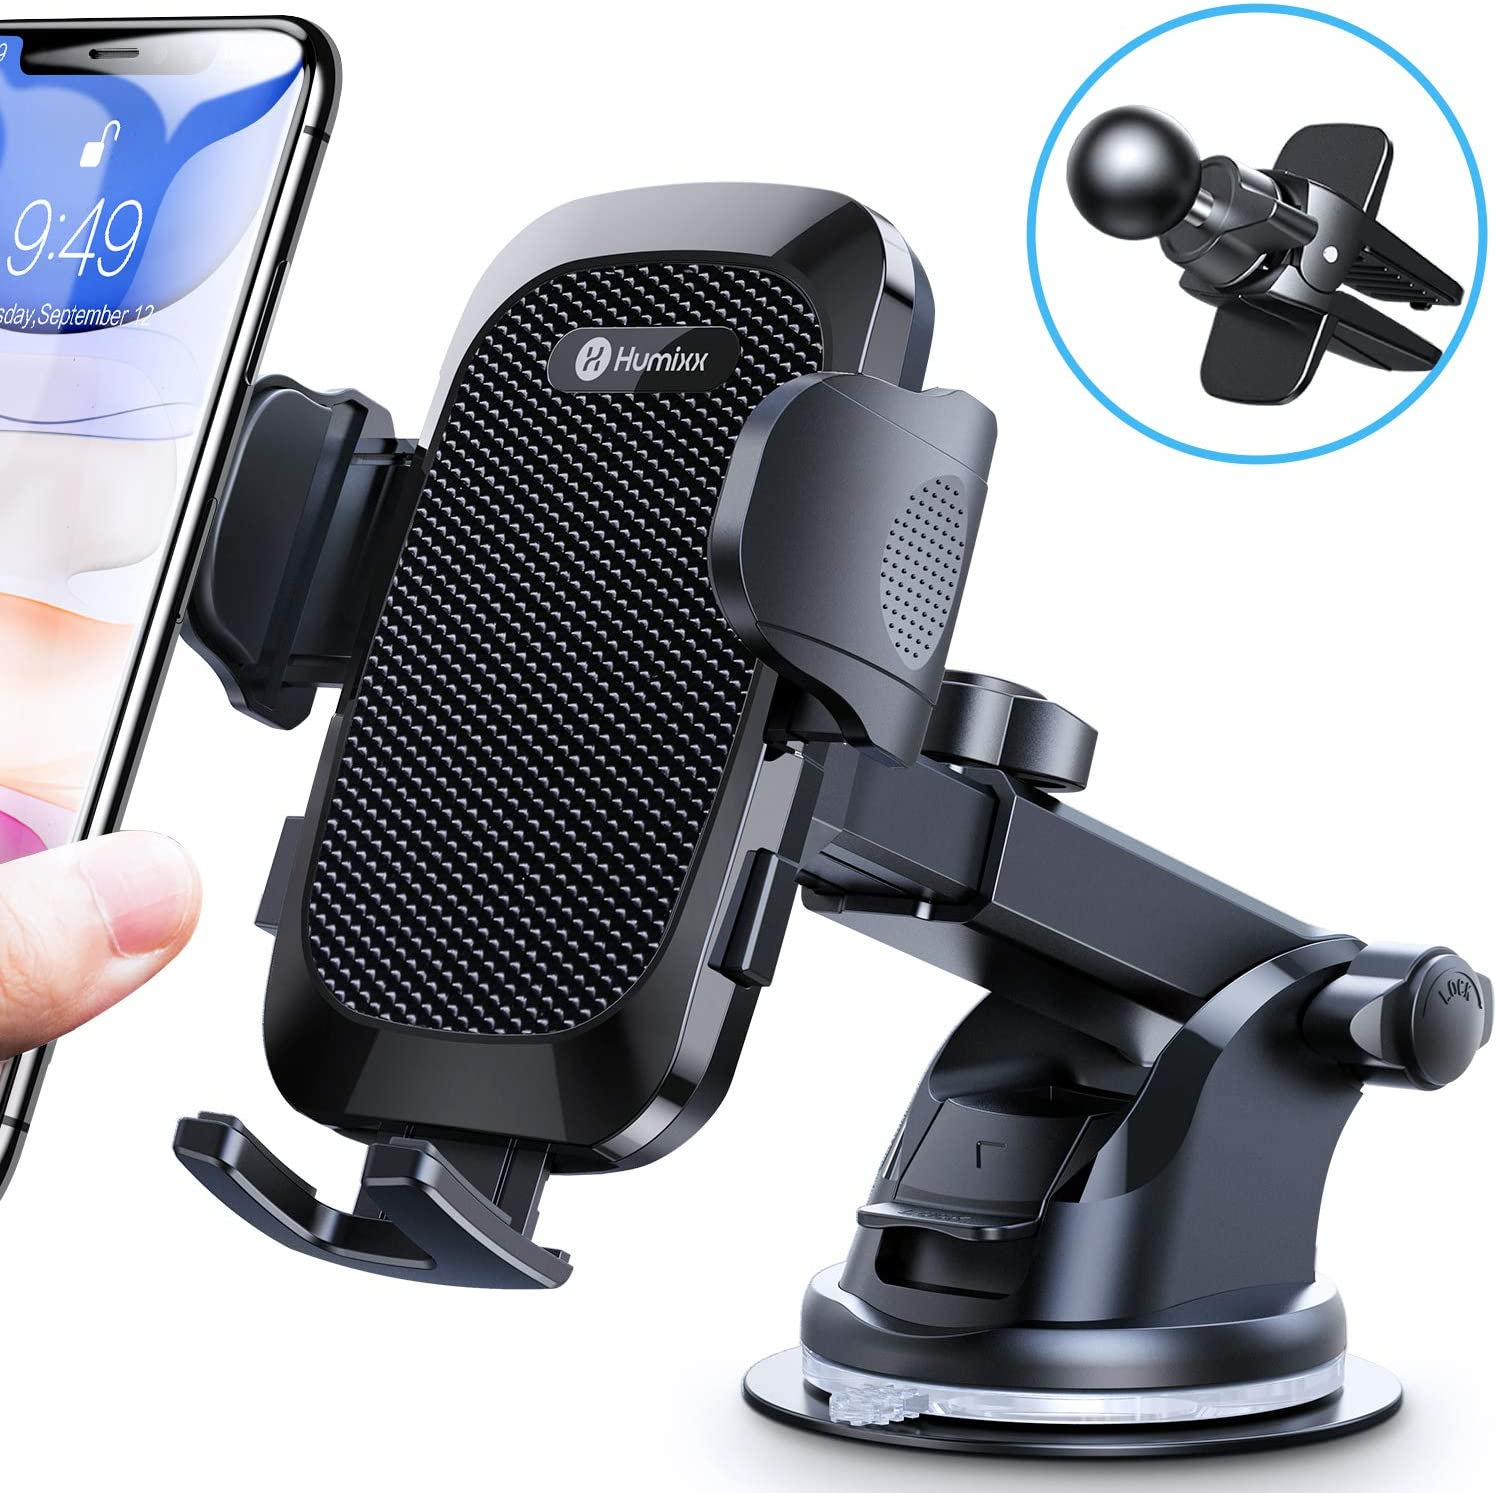 Humixx Phone Car Holder Mount, Upgraded Double Release Button Suction Cup Phone Holder for Car Dashboard Windshield Air Vent Compatible with iPhone SE 11 Pro Max XR XS X Samsung Galaxy Note 20 S20 S10